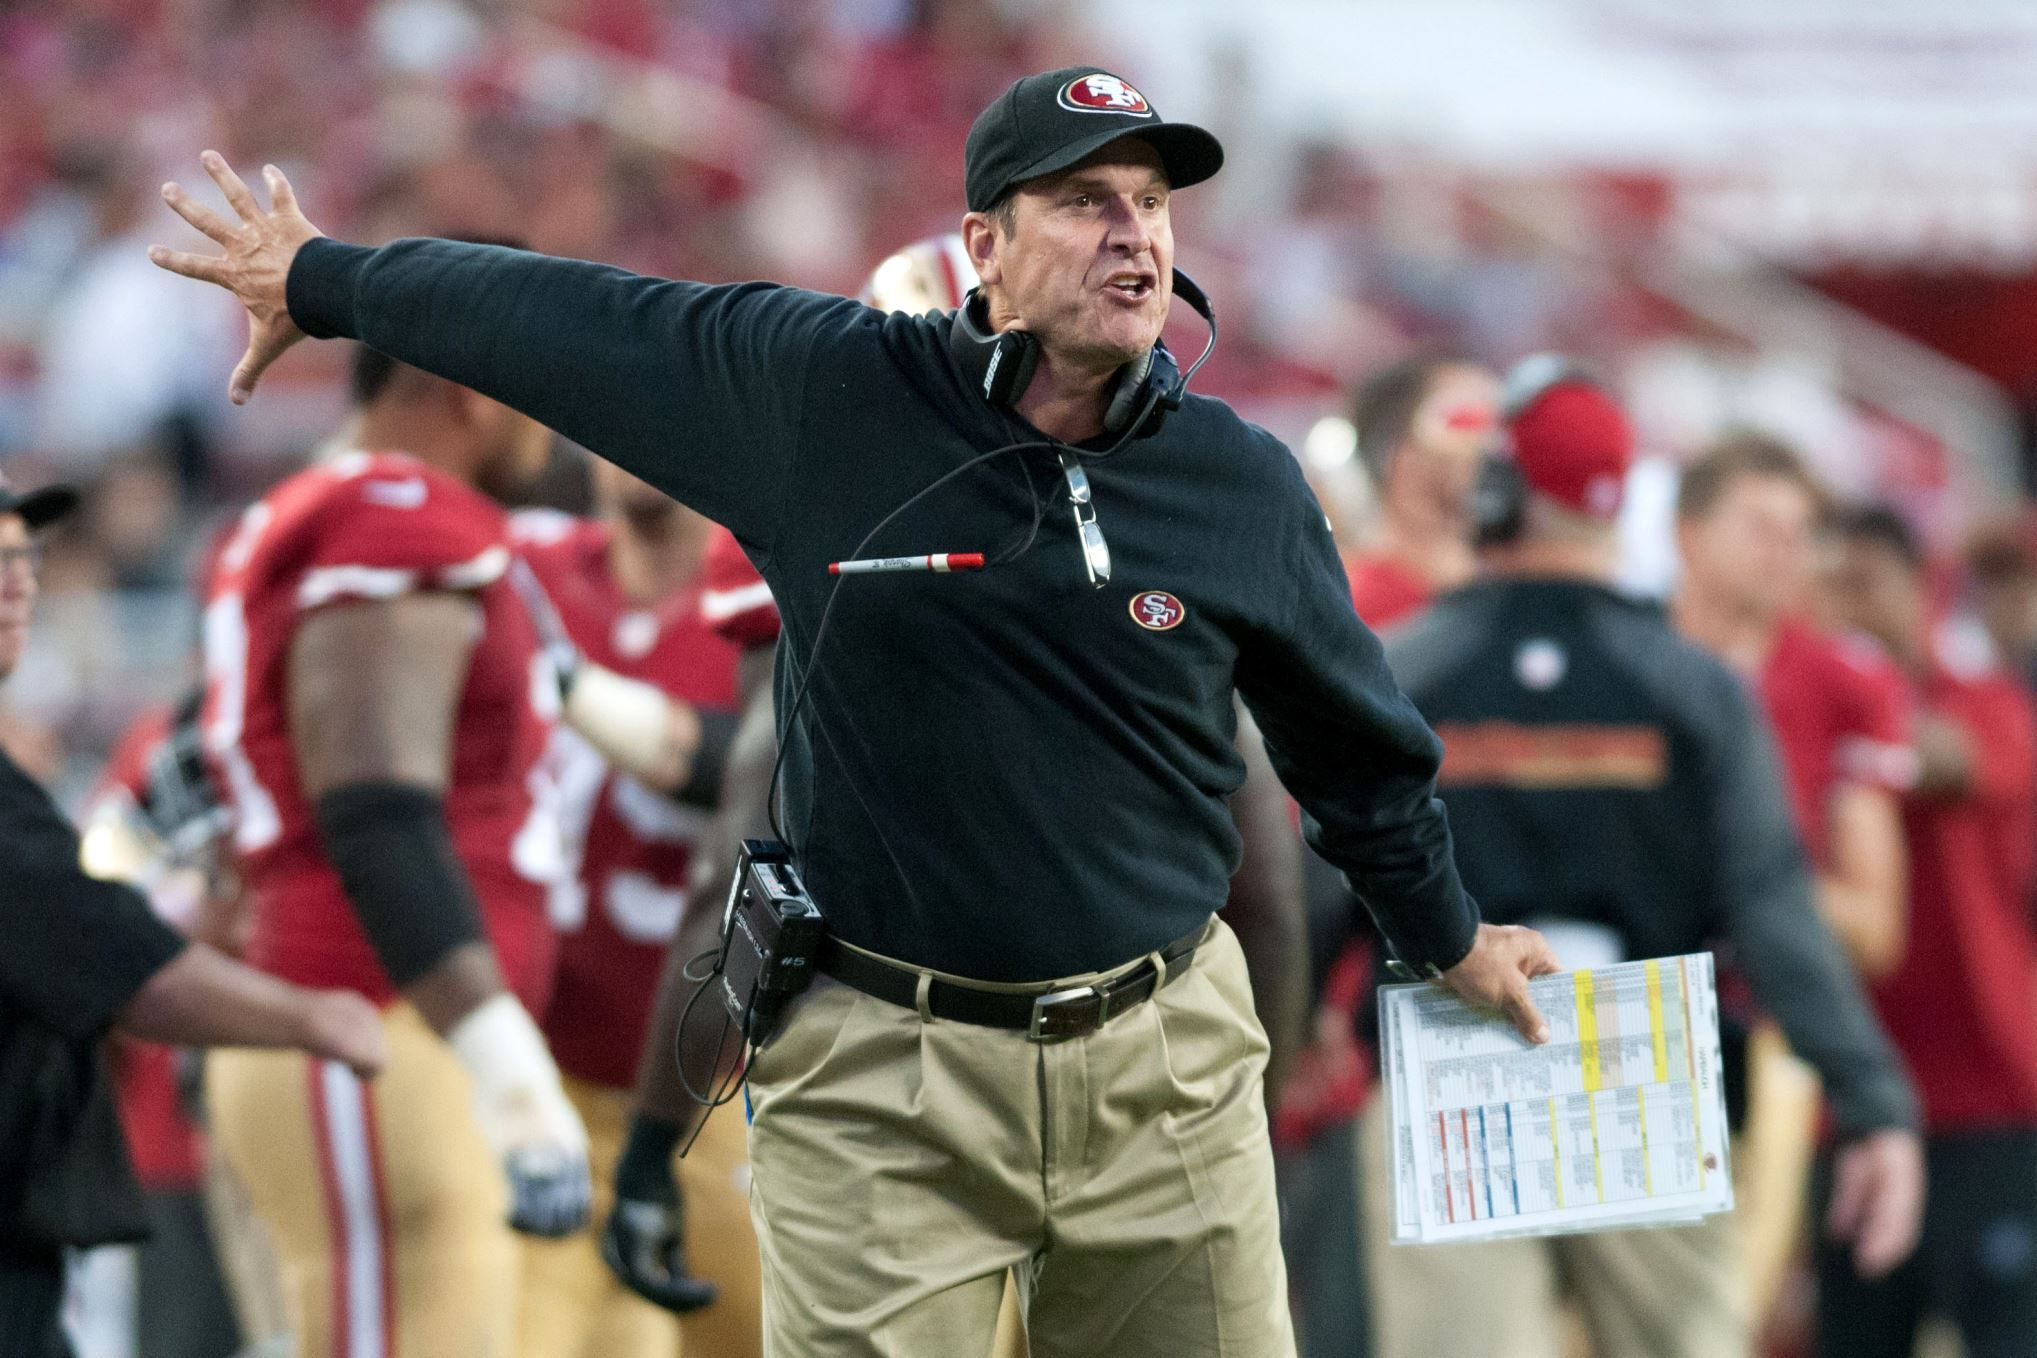 Harbaugh 49ers Split After Final Game Coach Free For Michigan To